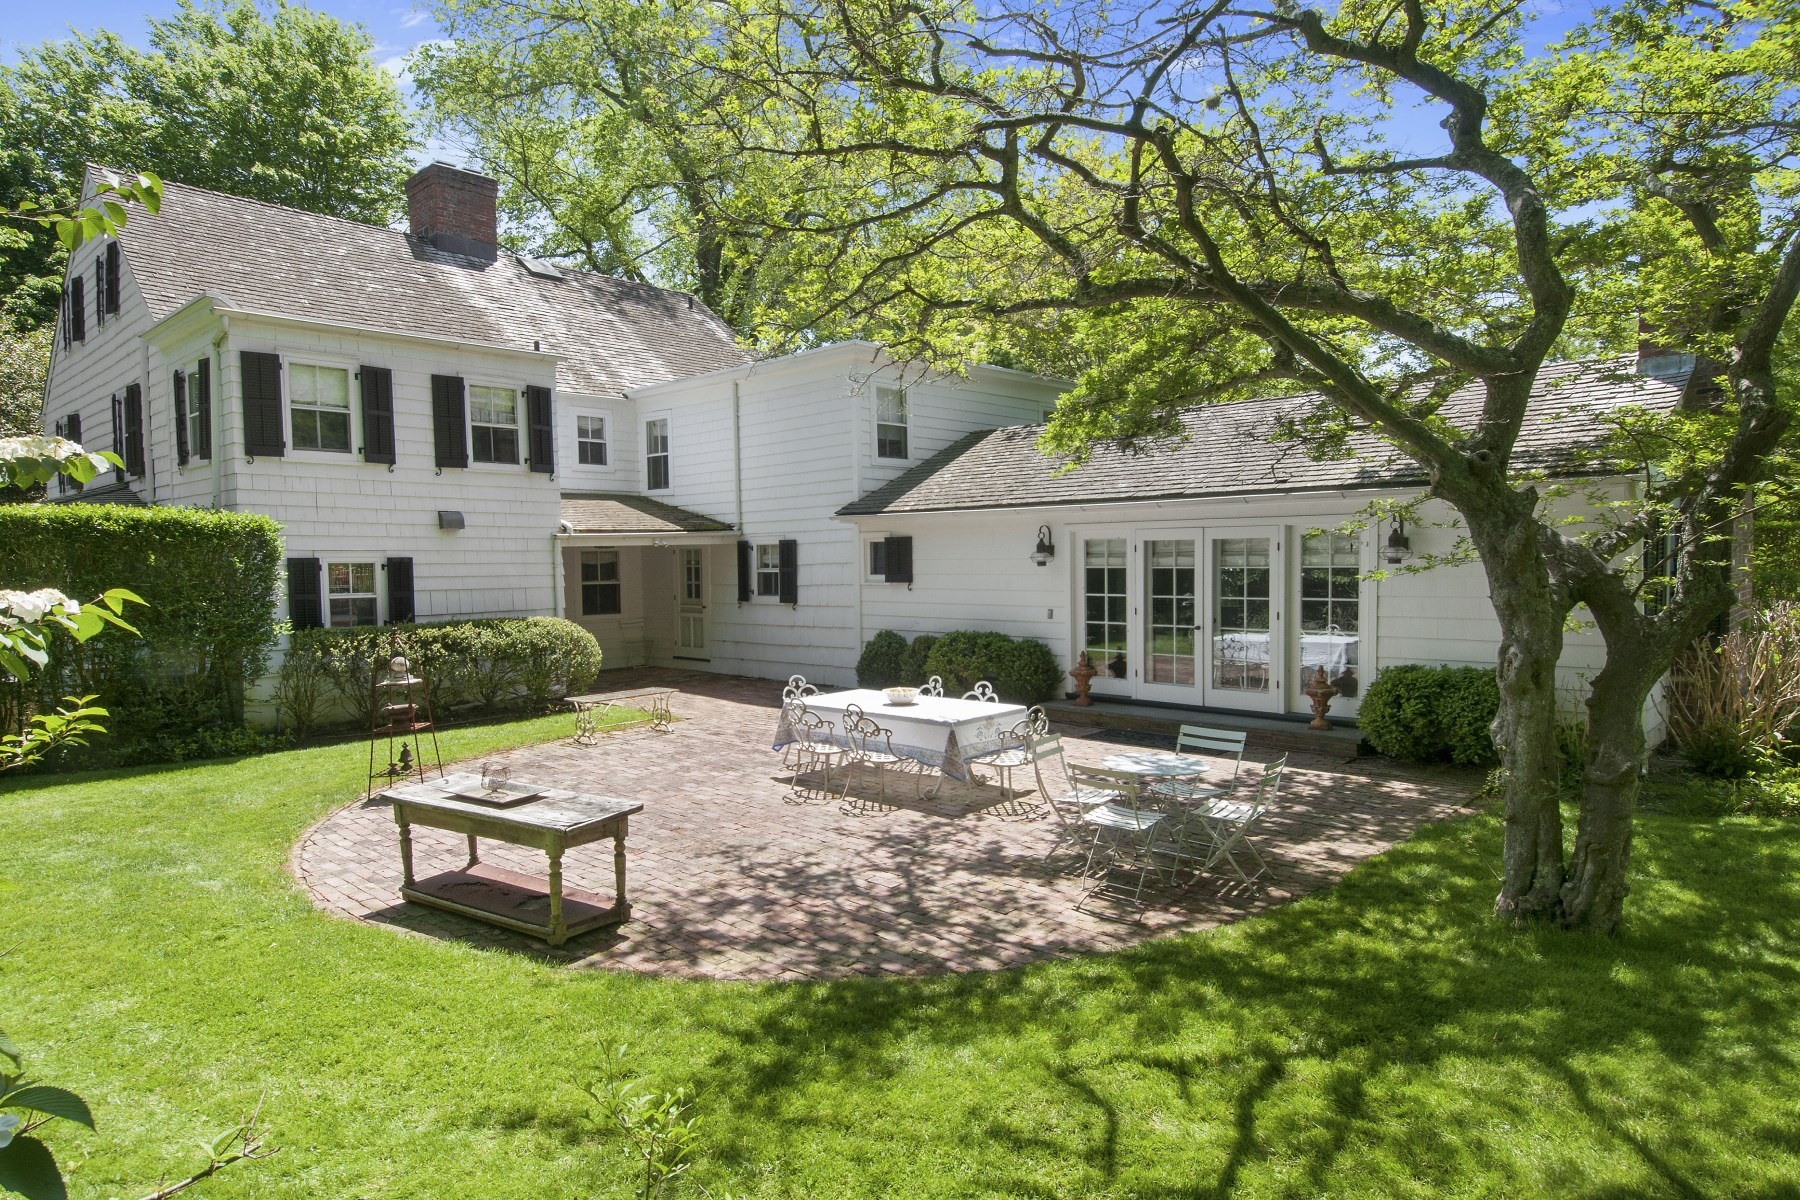 واحد منزل الأسرة للـ Sale في Terrific Value In East Hampton Village 109 Main St, East Hampton, New York, 11937 United States